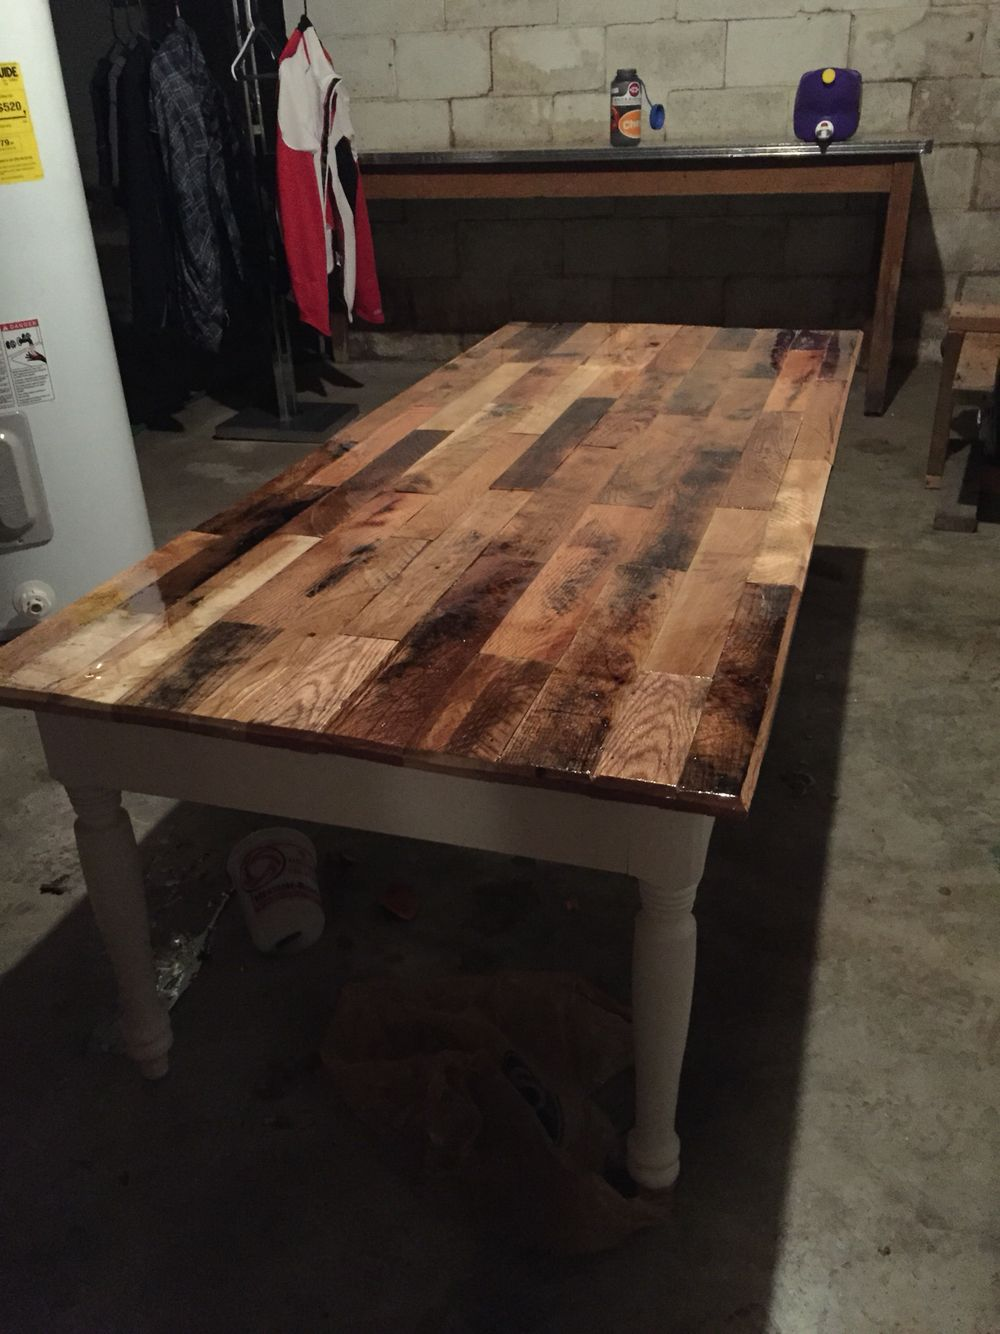 This Coffee Table Was Made From Pallet Parts That I Took Apart They Are Mostly Red Oak And Poplar There Jo Wood Pallet Projects Furniture Projects Diy Dresser